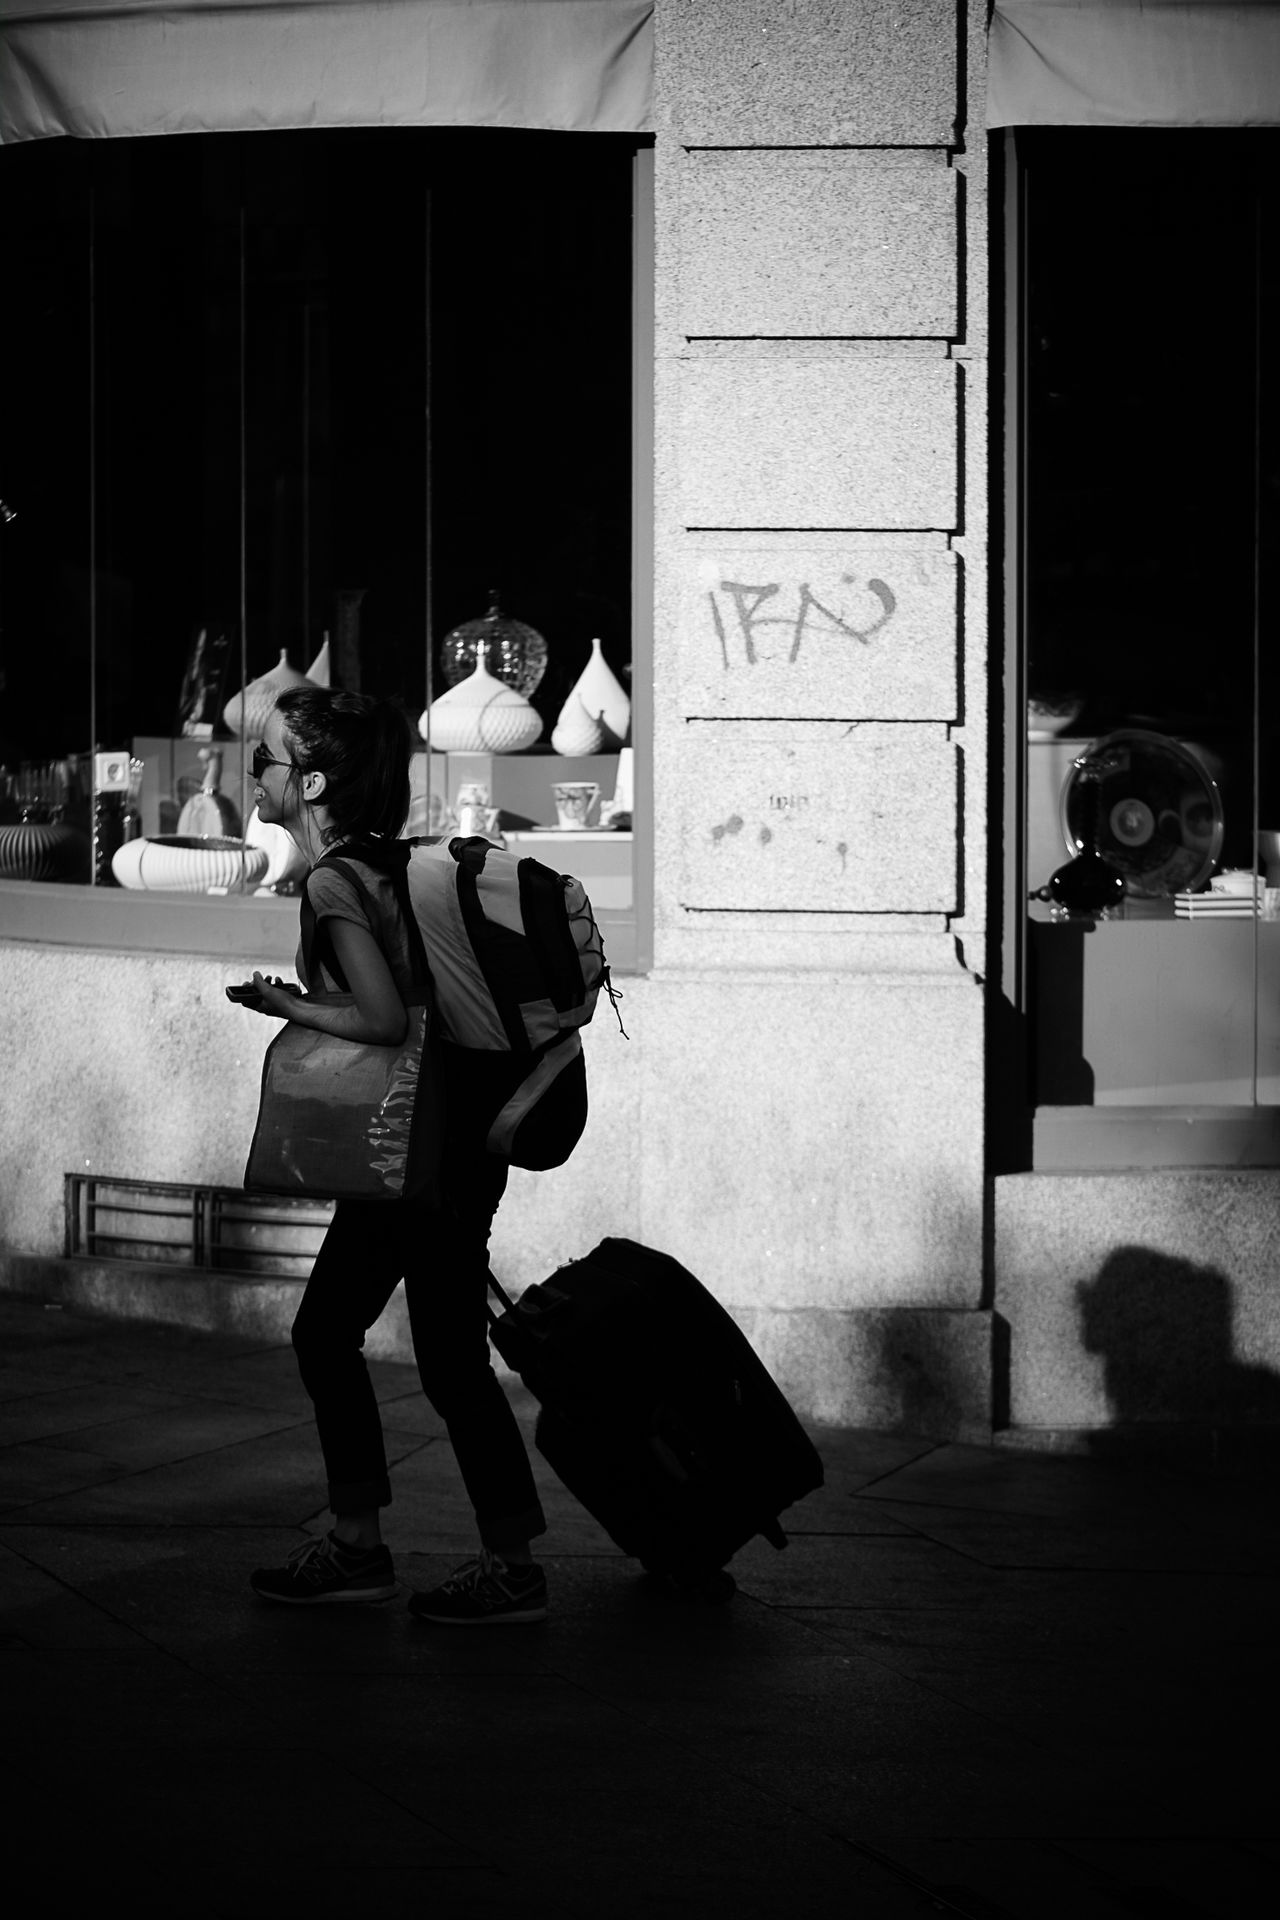 Arriving Adult Archival Bags Black And White Building Exterior Business Finance And Industry Day Full Length Lifestyles Monochrome Photography Outdoors People Person Real People Suitcase Togetherness Tourist Traveler Traveling Two People Vertical Woman